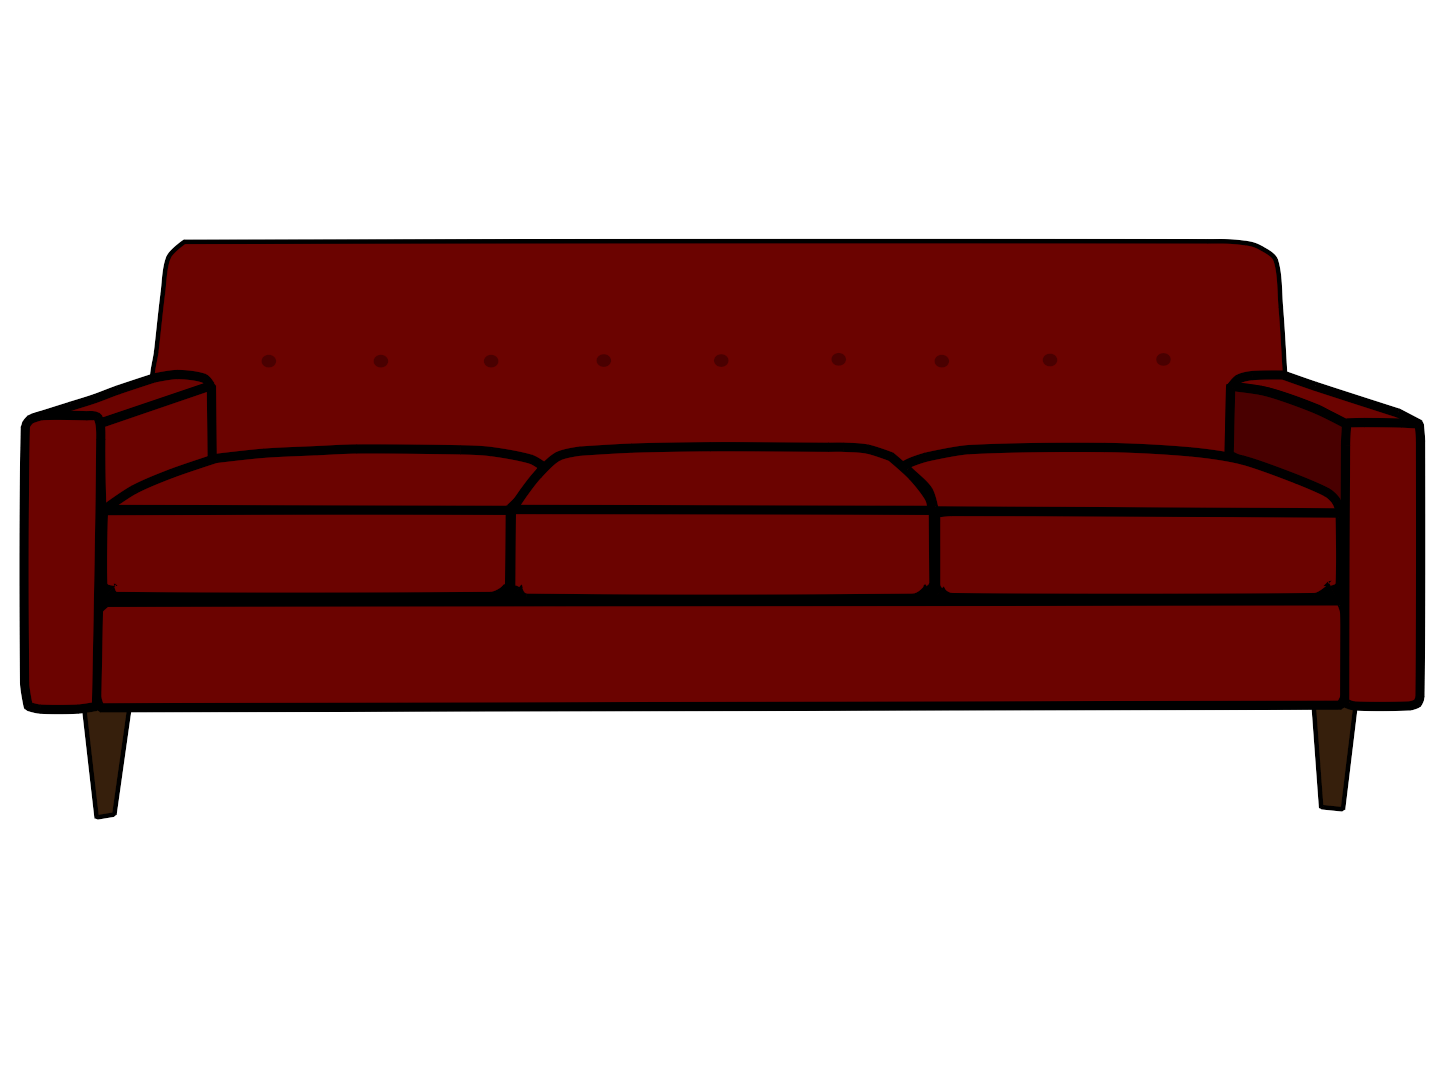 Sofa Set Vector Png Free Couch Images Download Free Clip Art Free Clip Art On